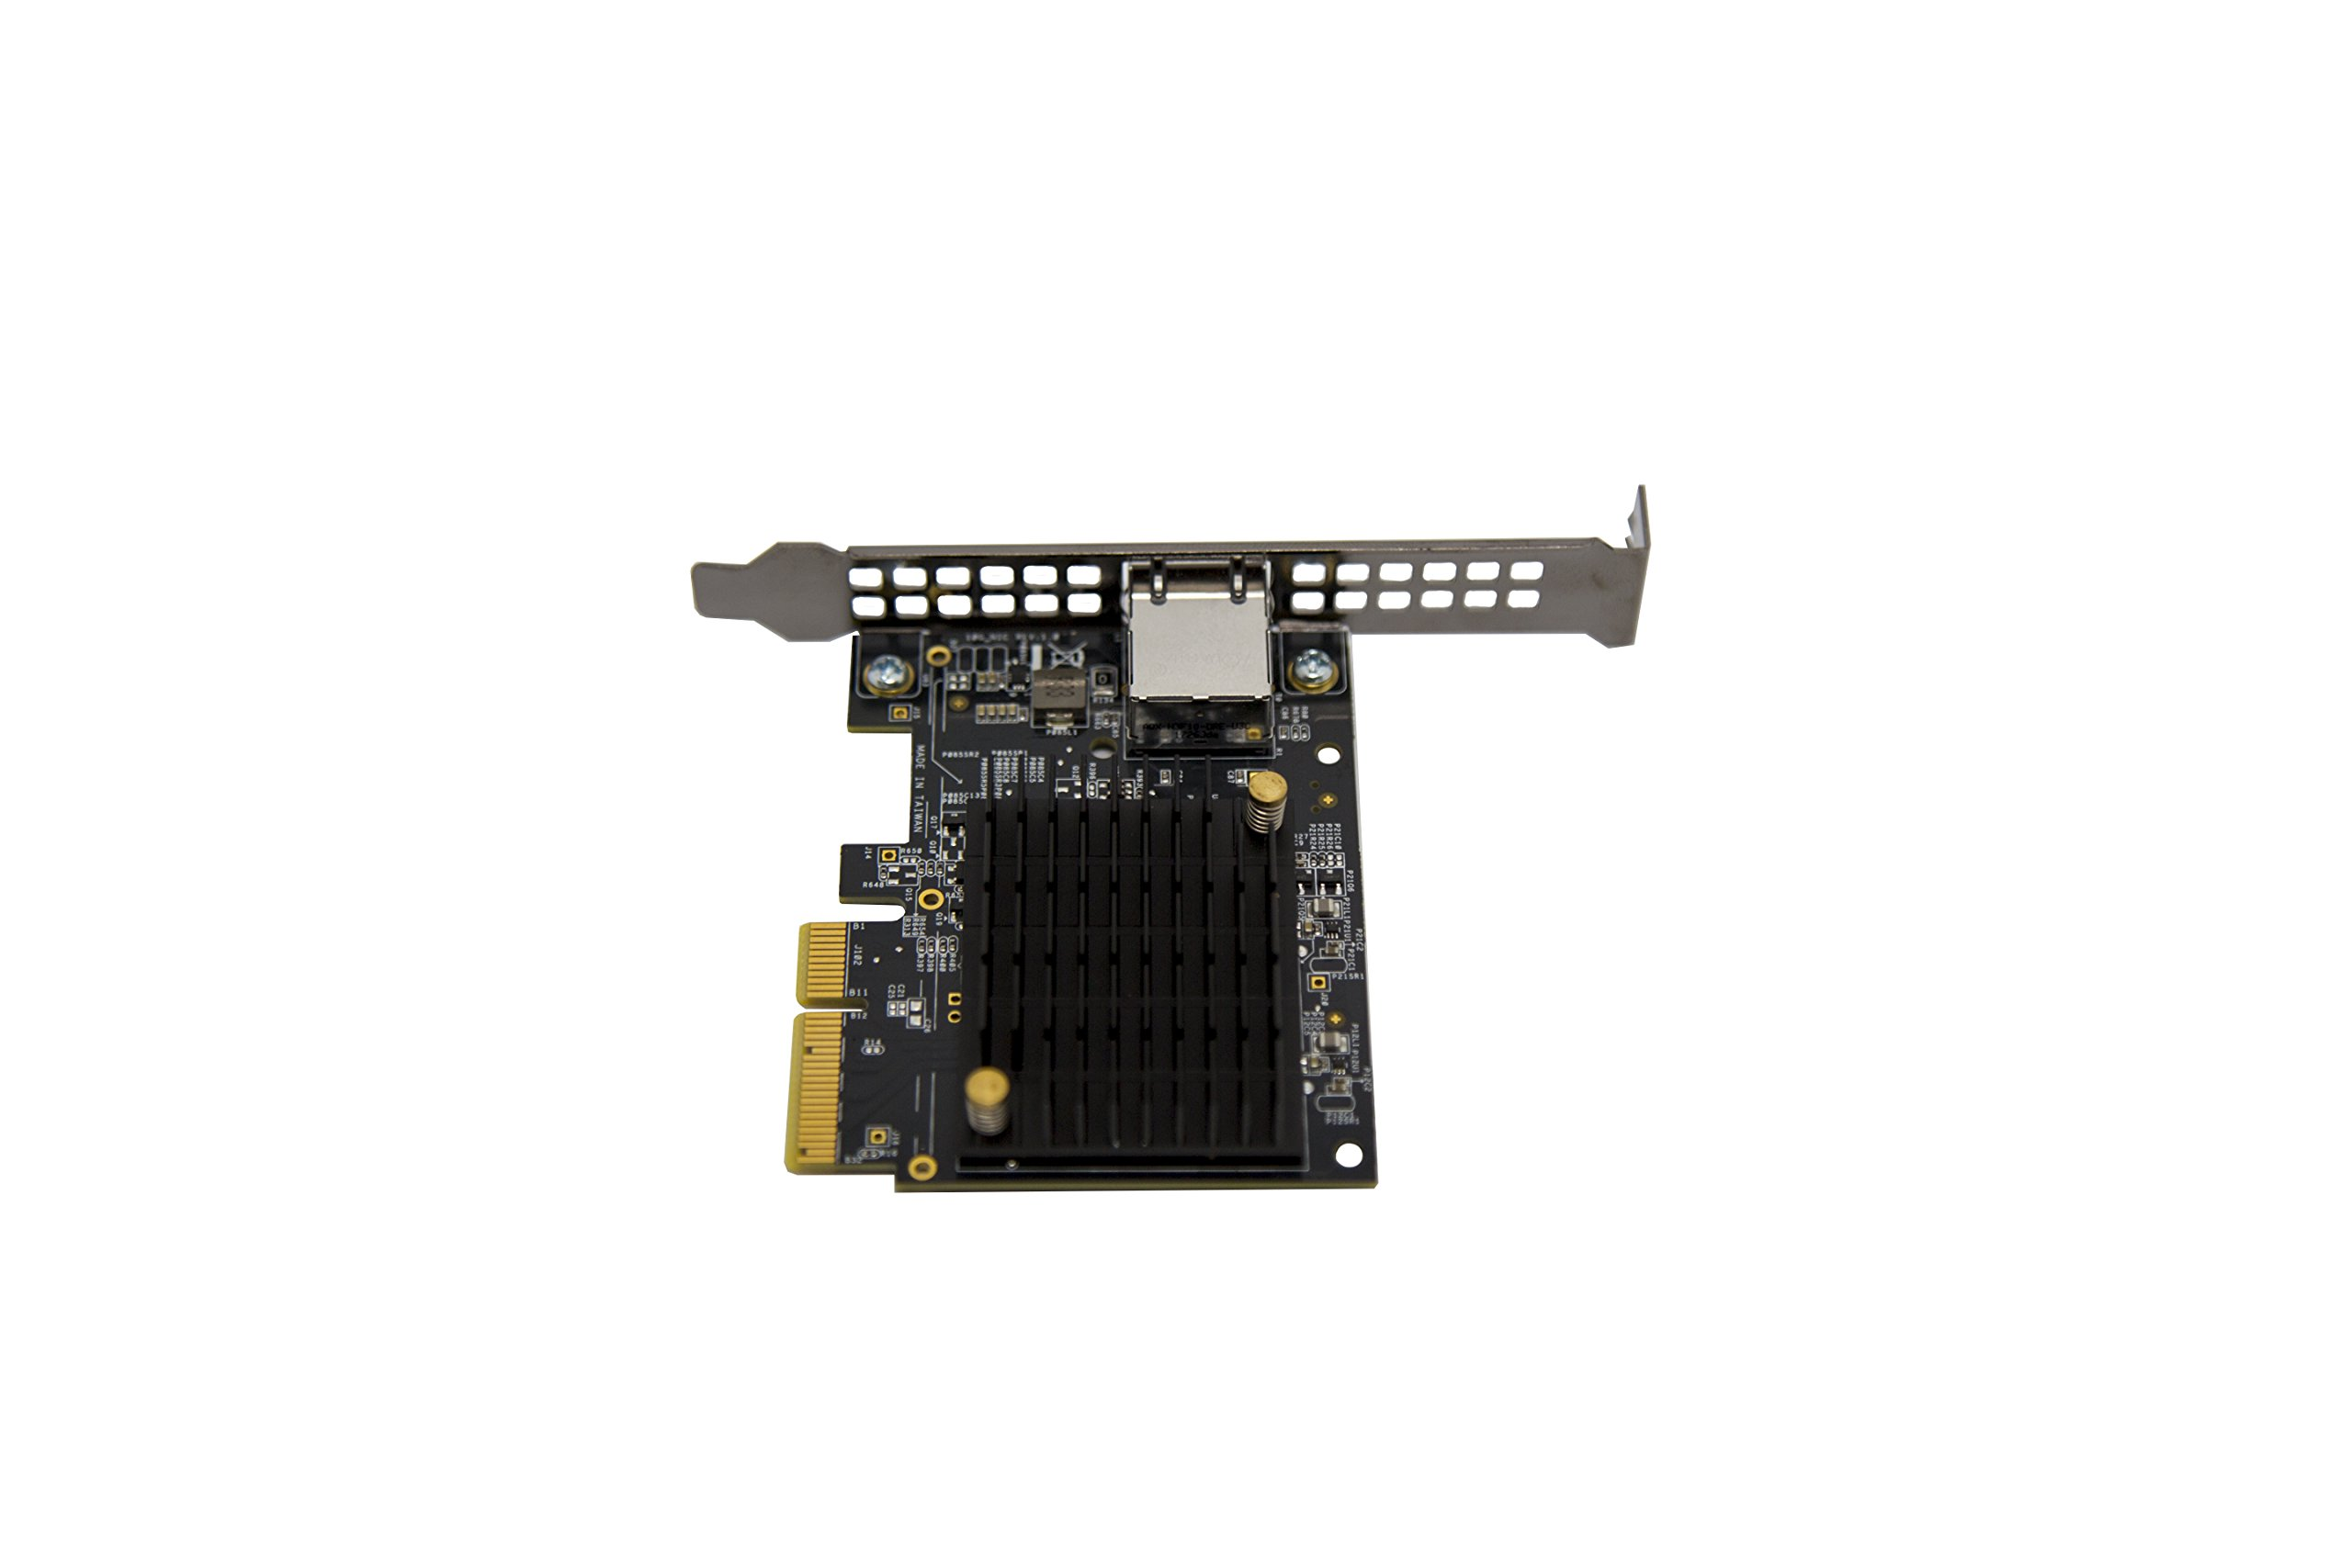 Aquantia AQtion 10G Gaming NIC, 5-speed Ethernet Network Adapter with PCIe 3.0 and RJ-45 (AQN-107)